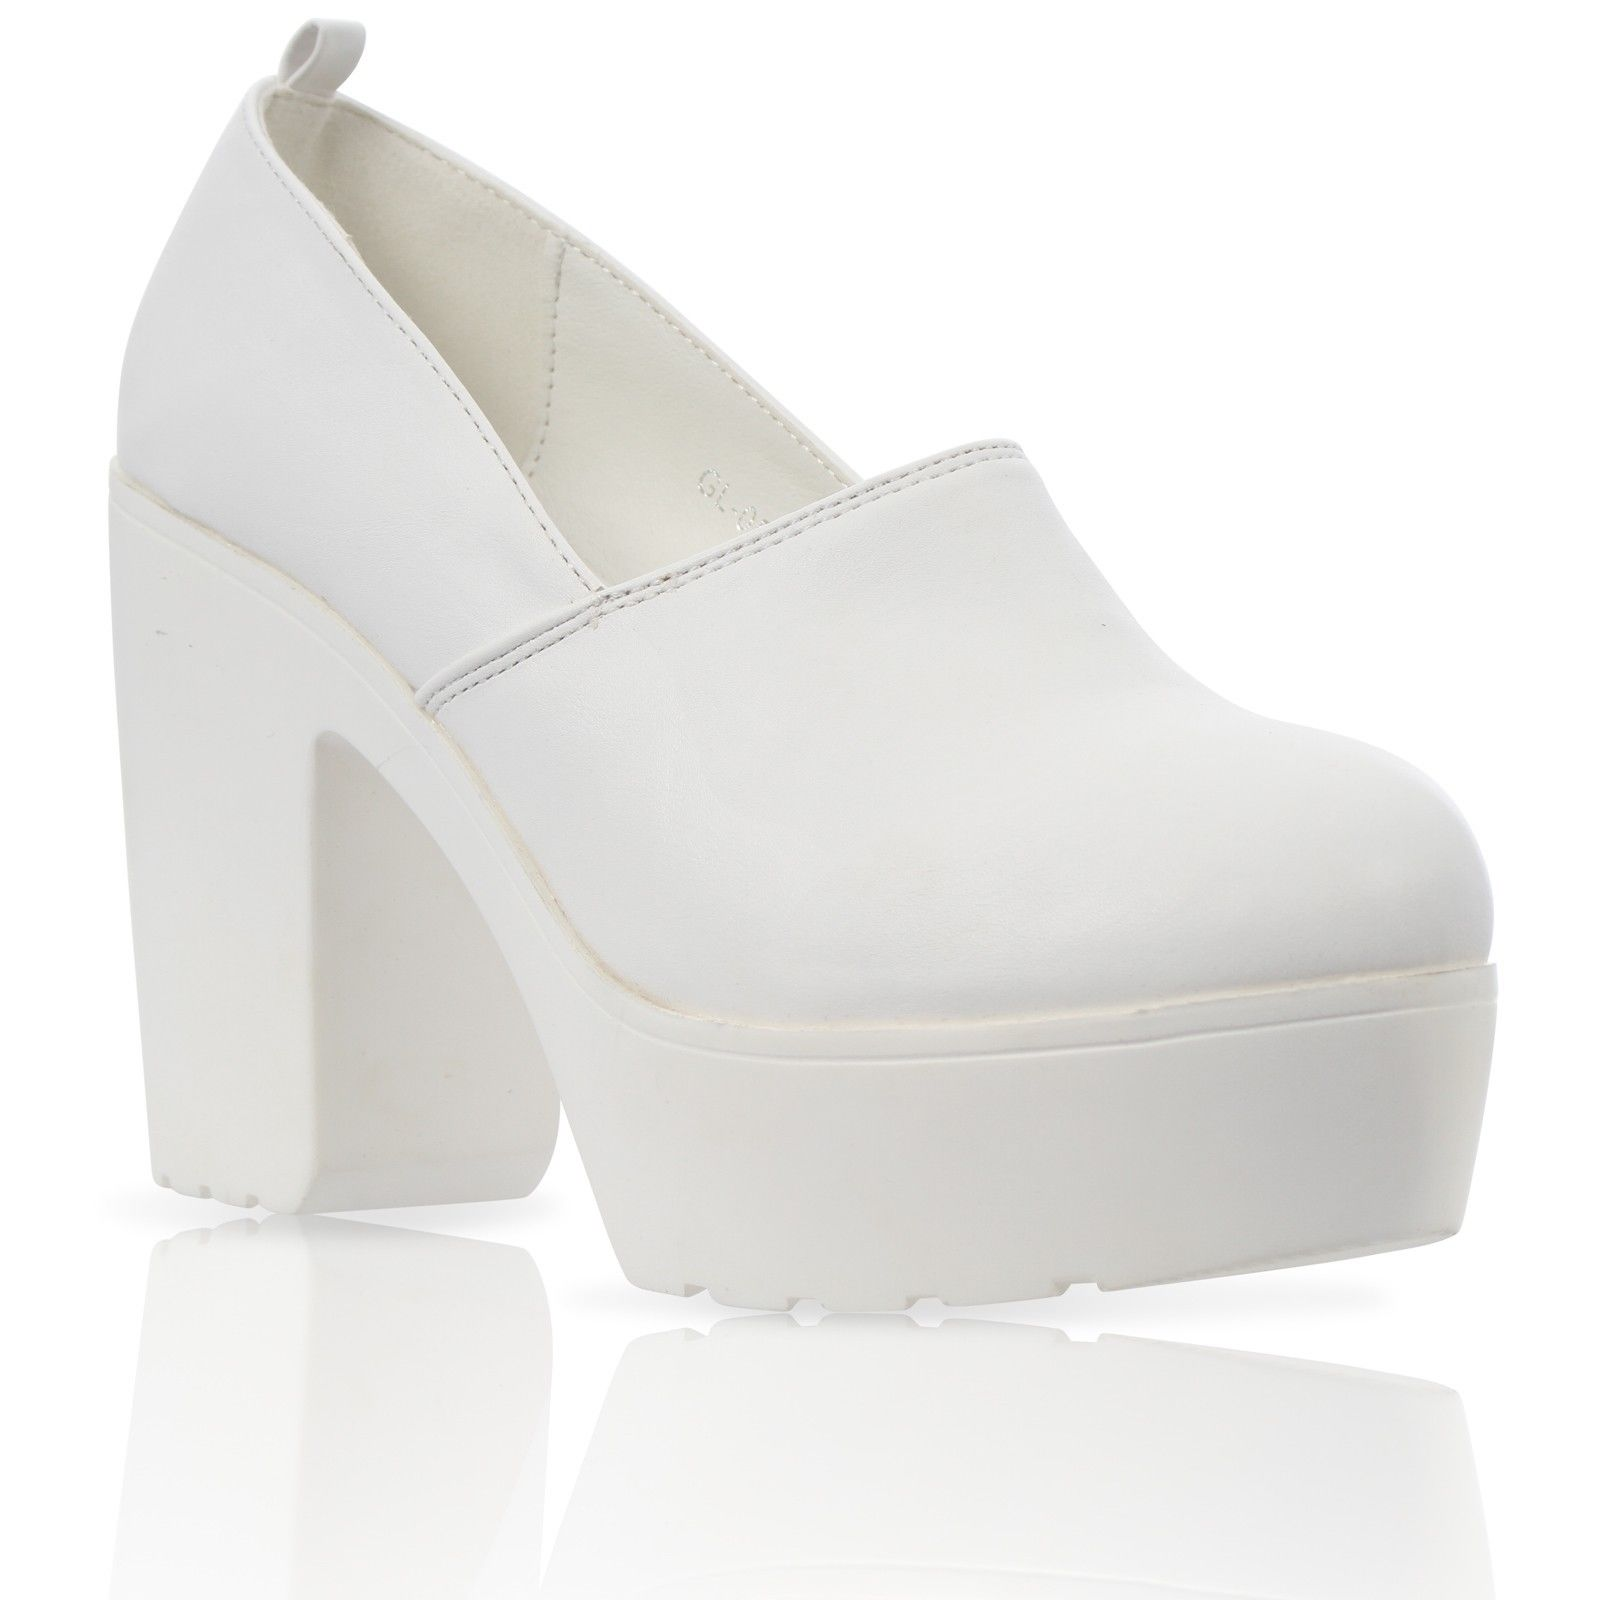 712be7a4742 GL05 LADIES CLEATED LOOKED SOLE CHUNKY BLOCK HEEL PLATFORM COURT SHOES